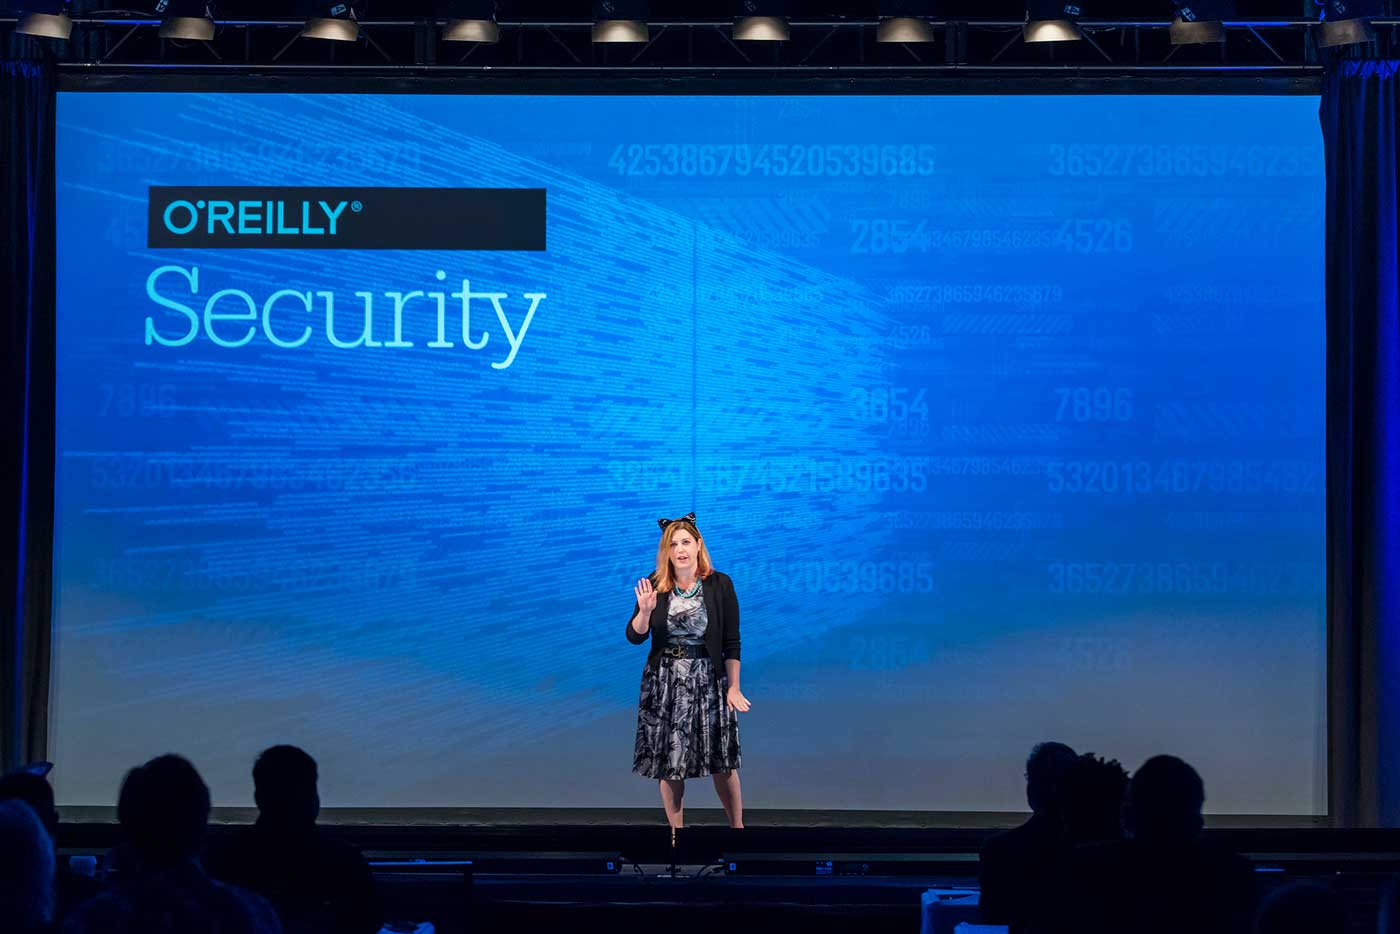 Allison Miller at the O'Reilly Security Conference in New York 2017